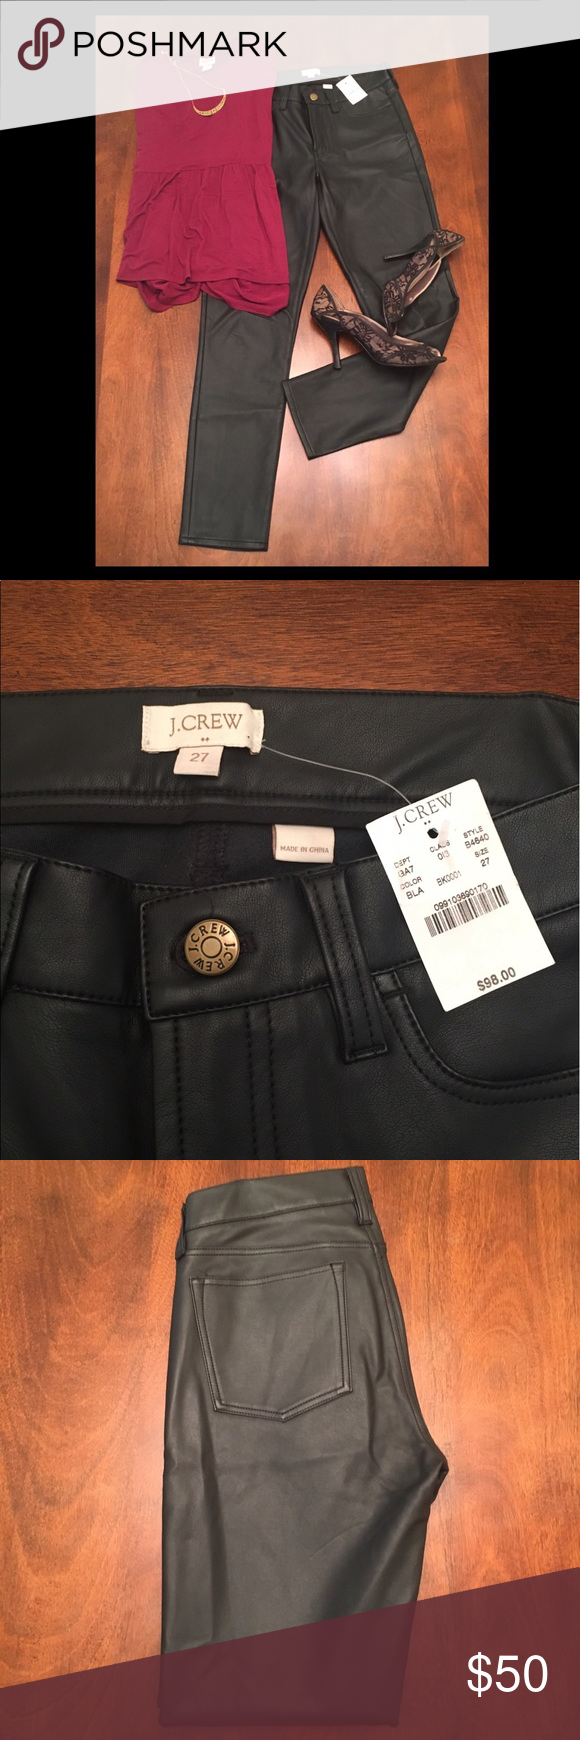 """J CREW faux leather pants NEW WITH TAGS! * Viscose rayon. * Sits on hips, with a superskinny, straight leg. * 28"""" inseam. * Traditional 5-pocket styling. * Dry clean * Import. * Length - approx 27 1/2 J. Crew Pants"""